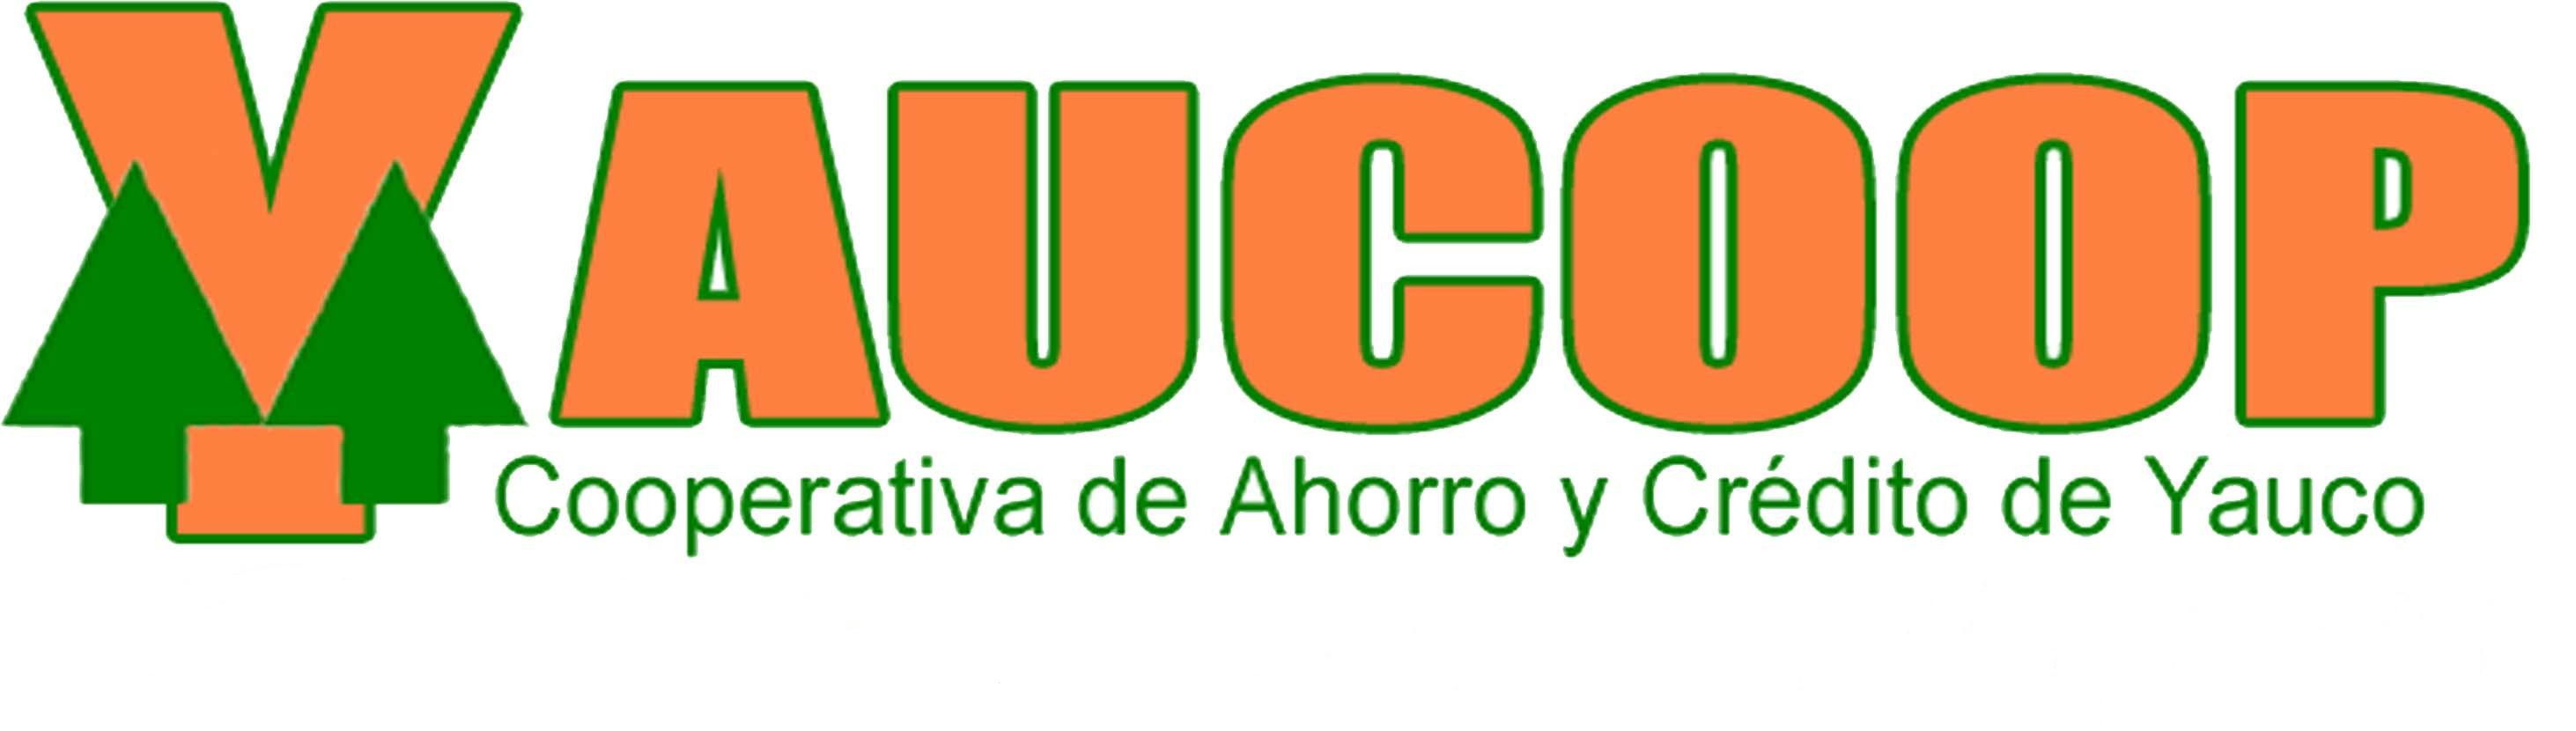 Yauco-Coop small